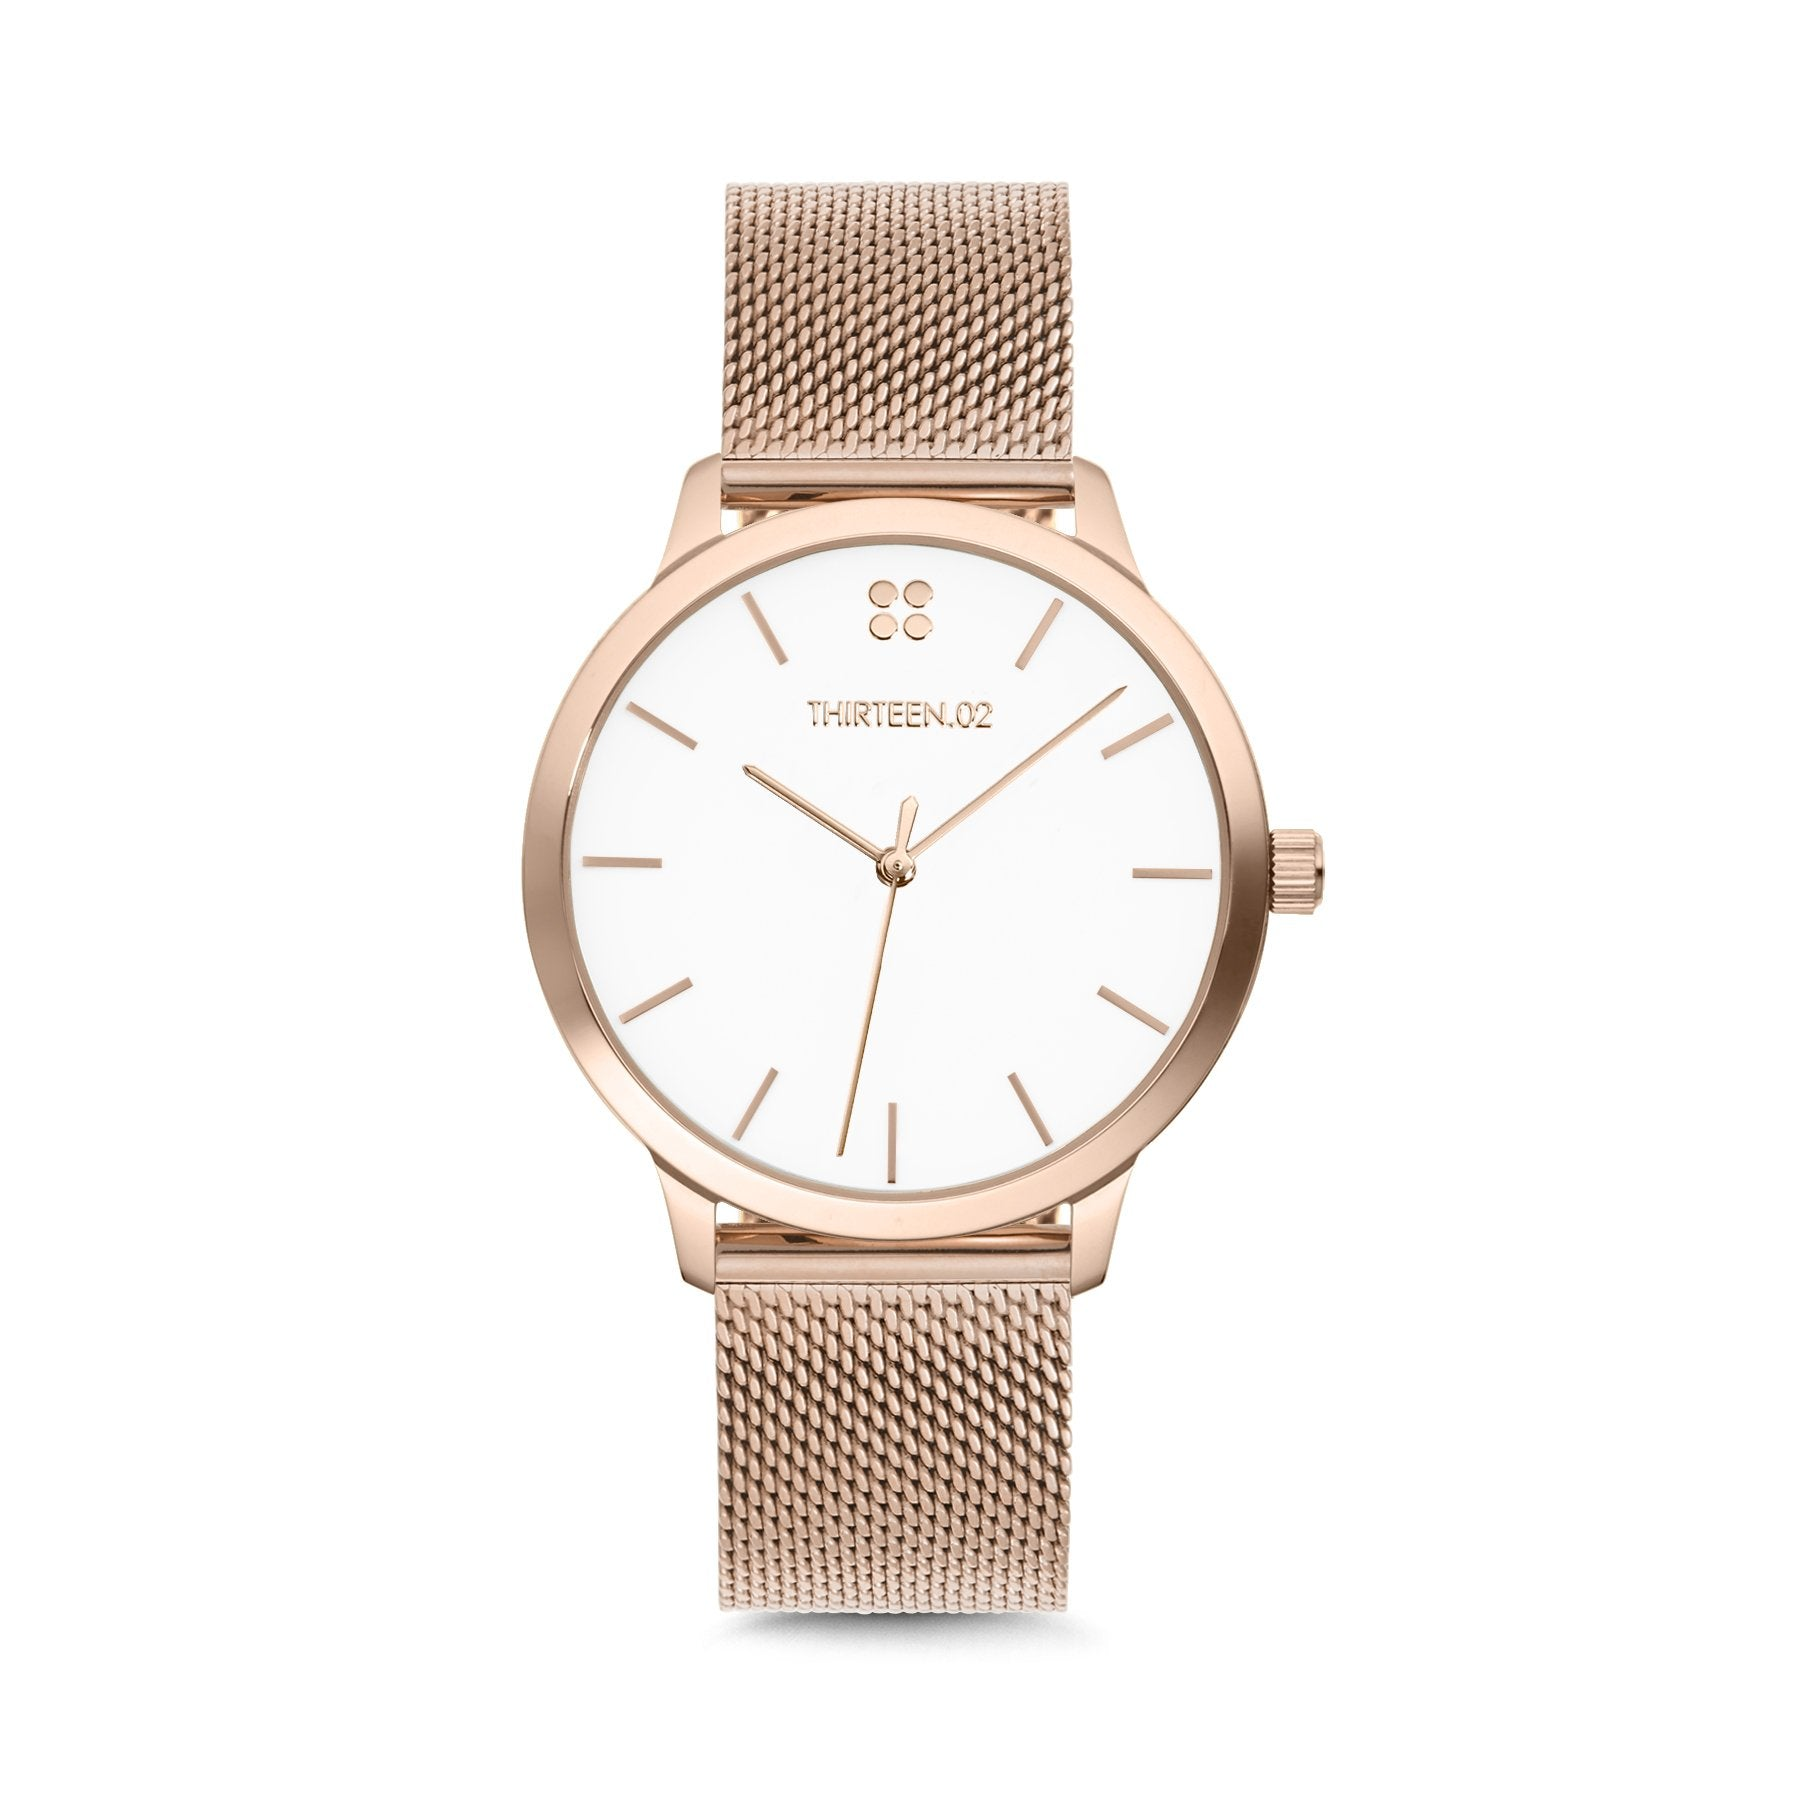 1302 38mm Rose Gold Mesh Watch